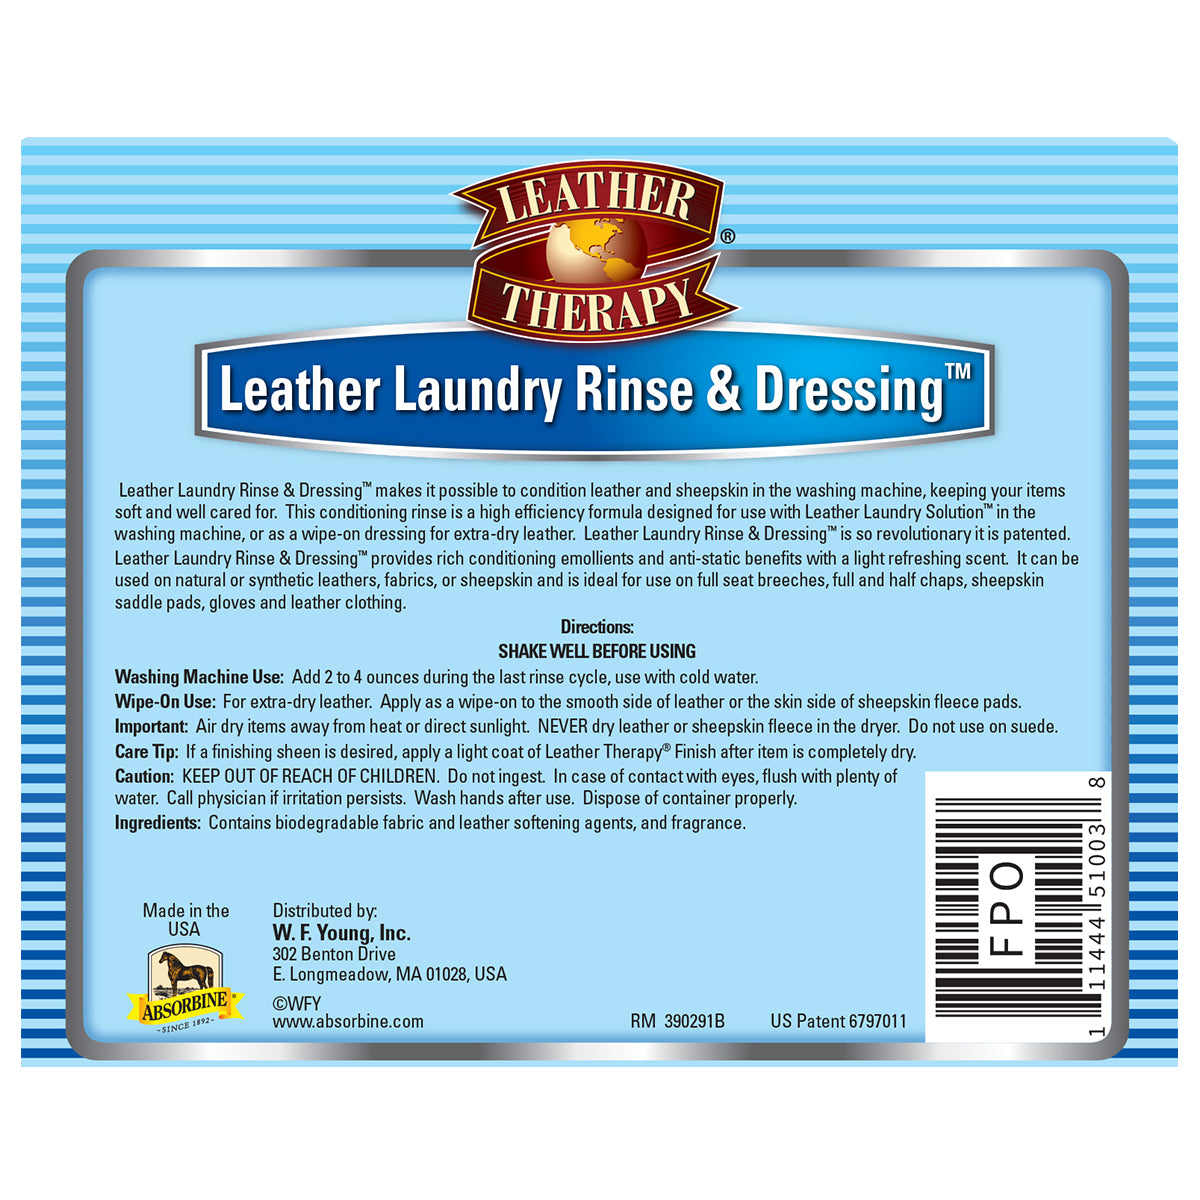 Leather Therapy® Laundry Rinse & Dressing